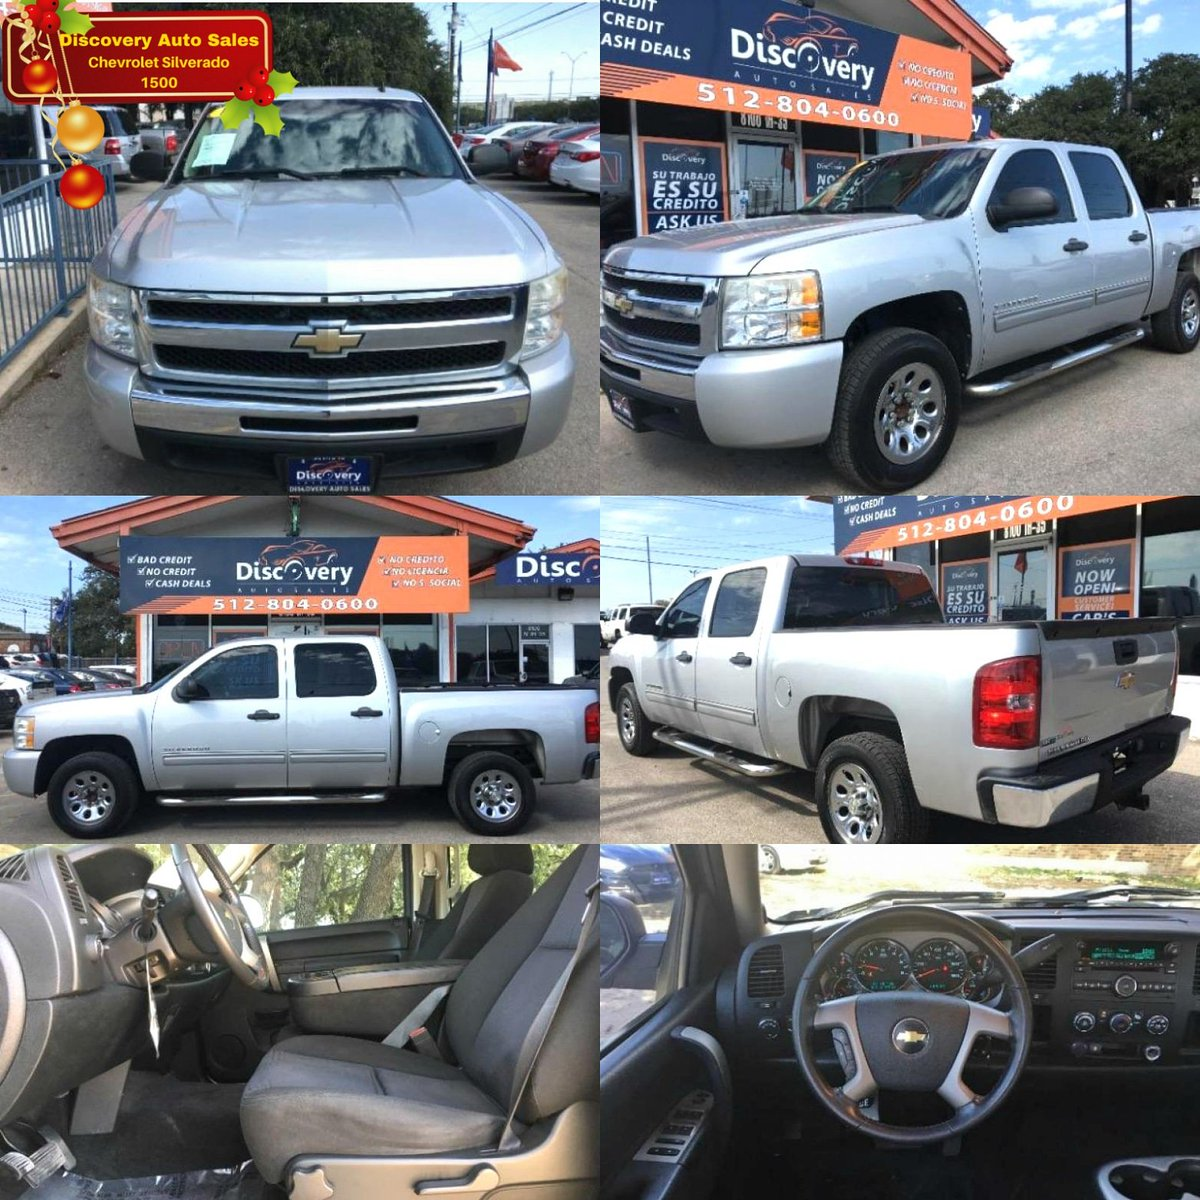 Discovery Auto Sales >> Discovery Auto Sales On Twitter A Truck For The Whole